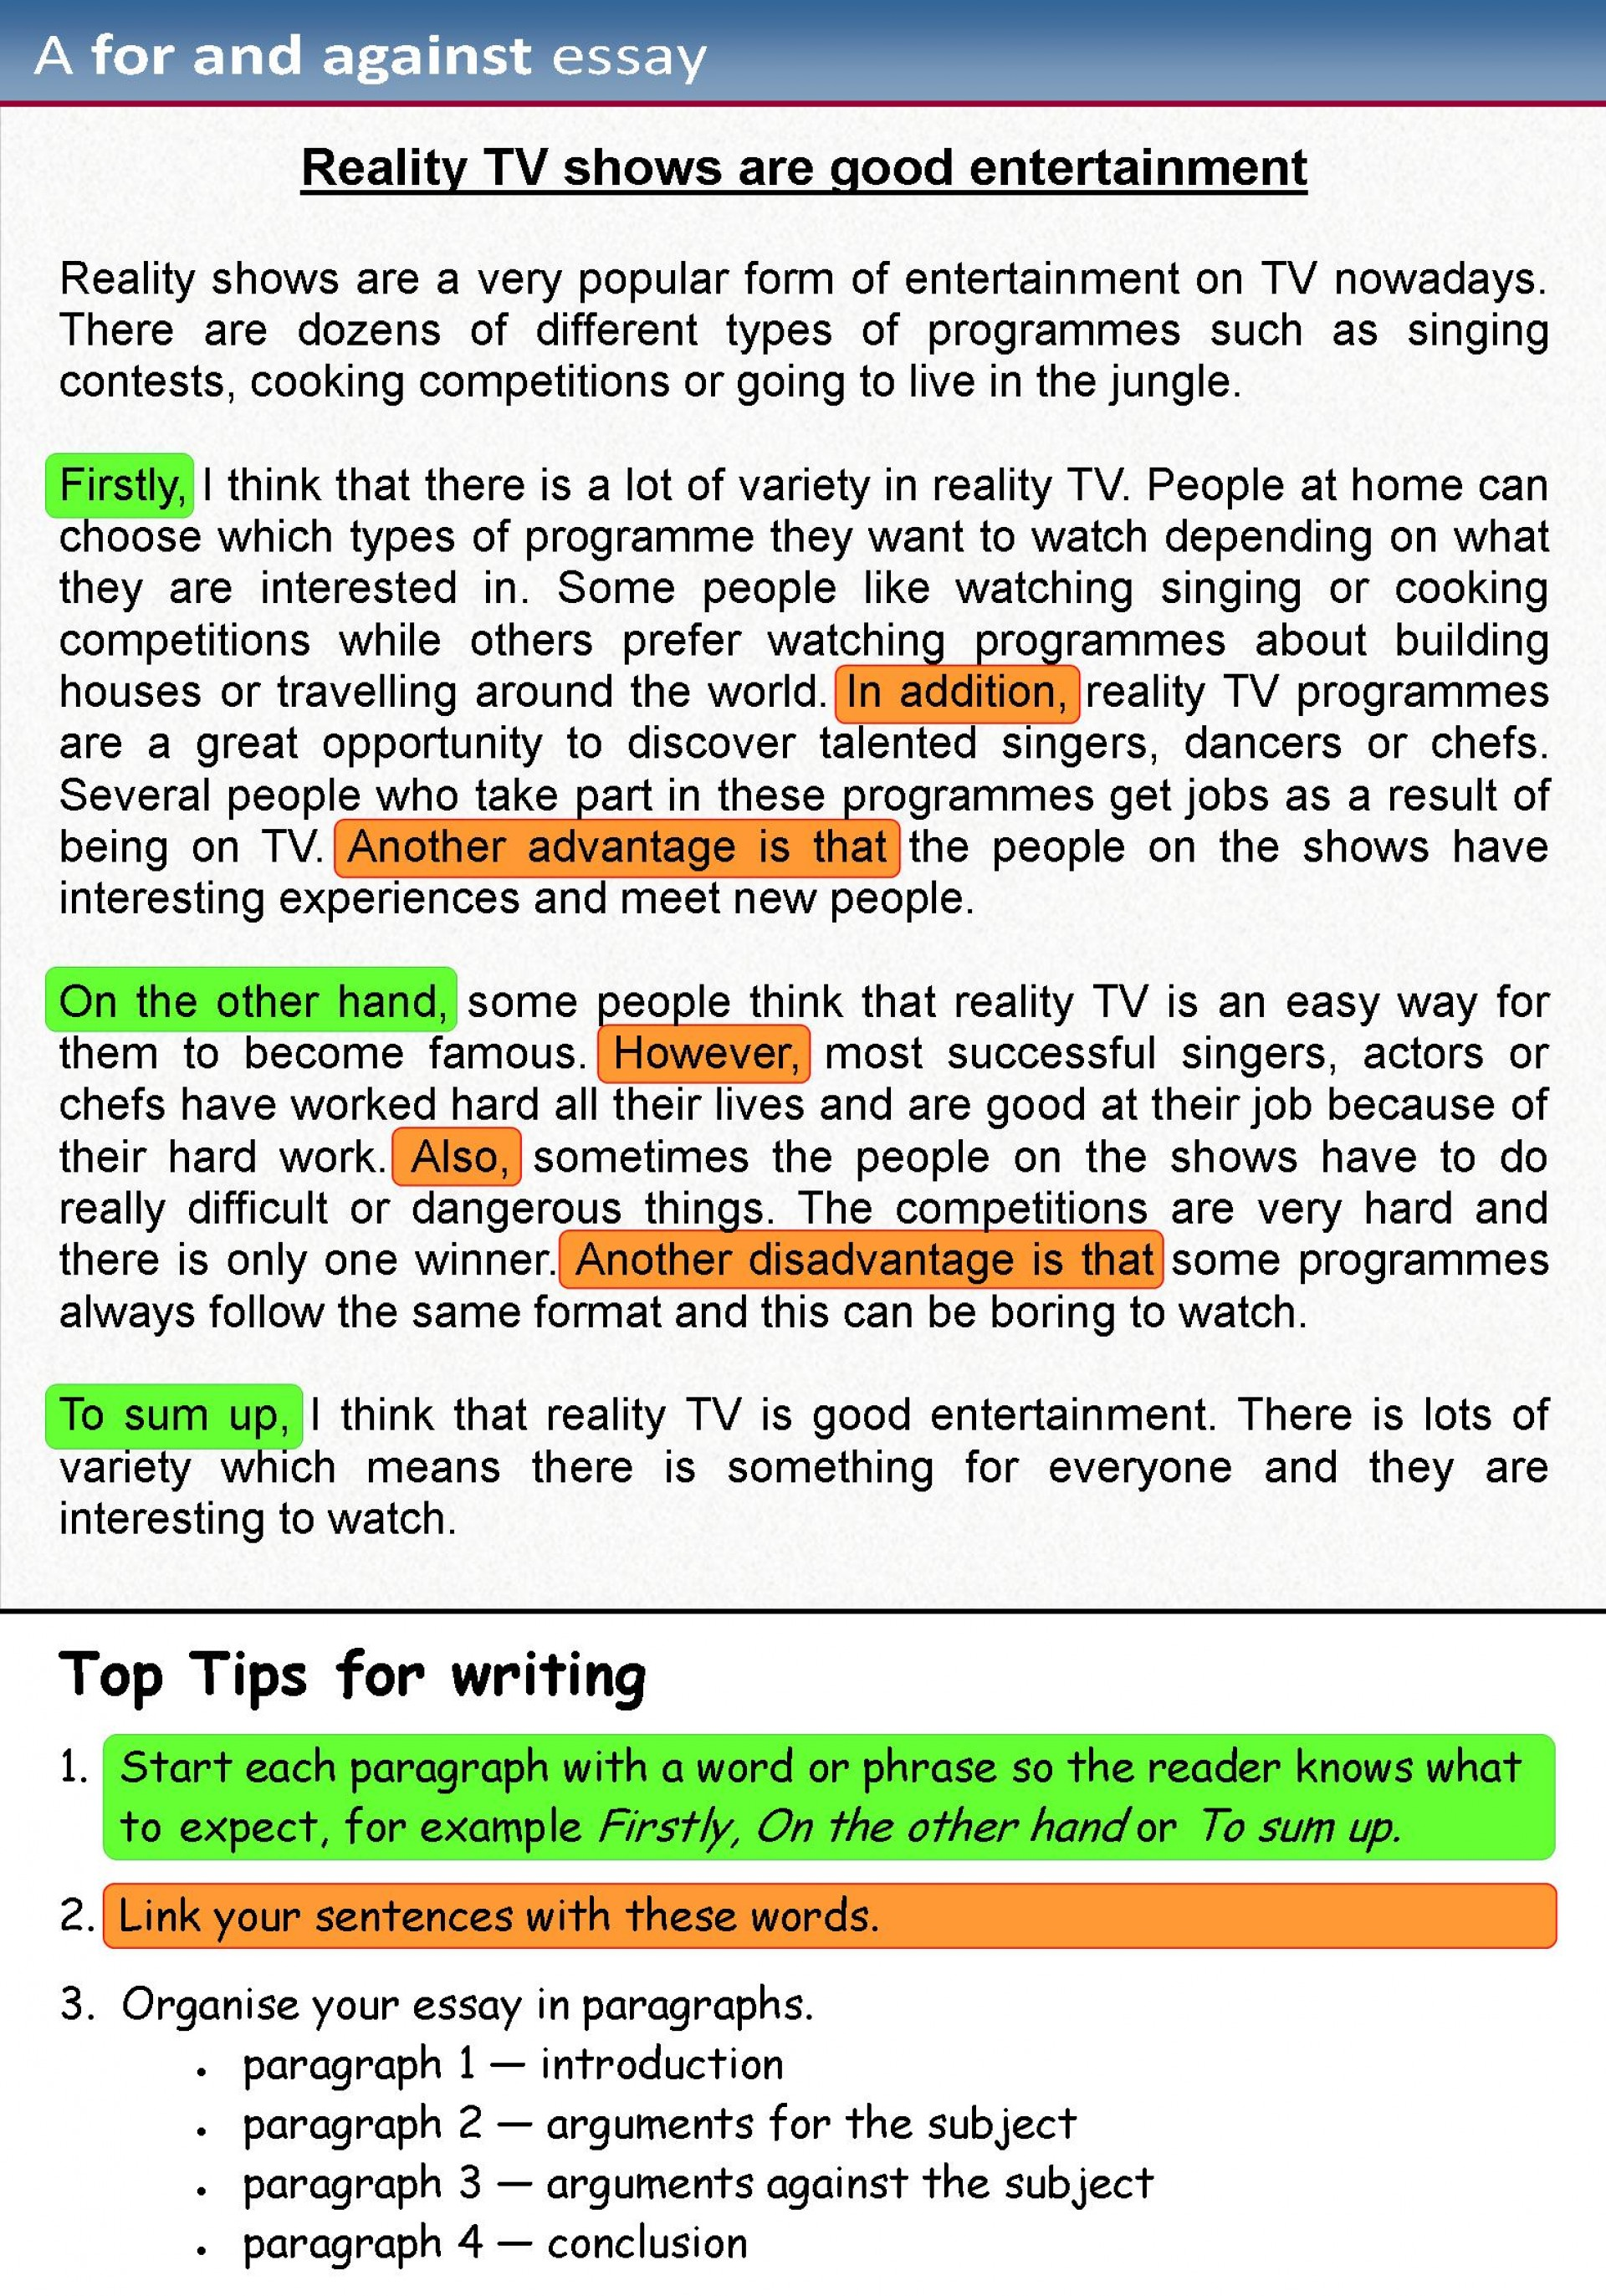 011 For Against Essay 1 Example Paragraph Sensational 3 Kids 1920